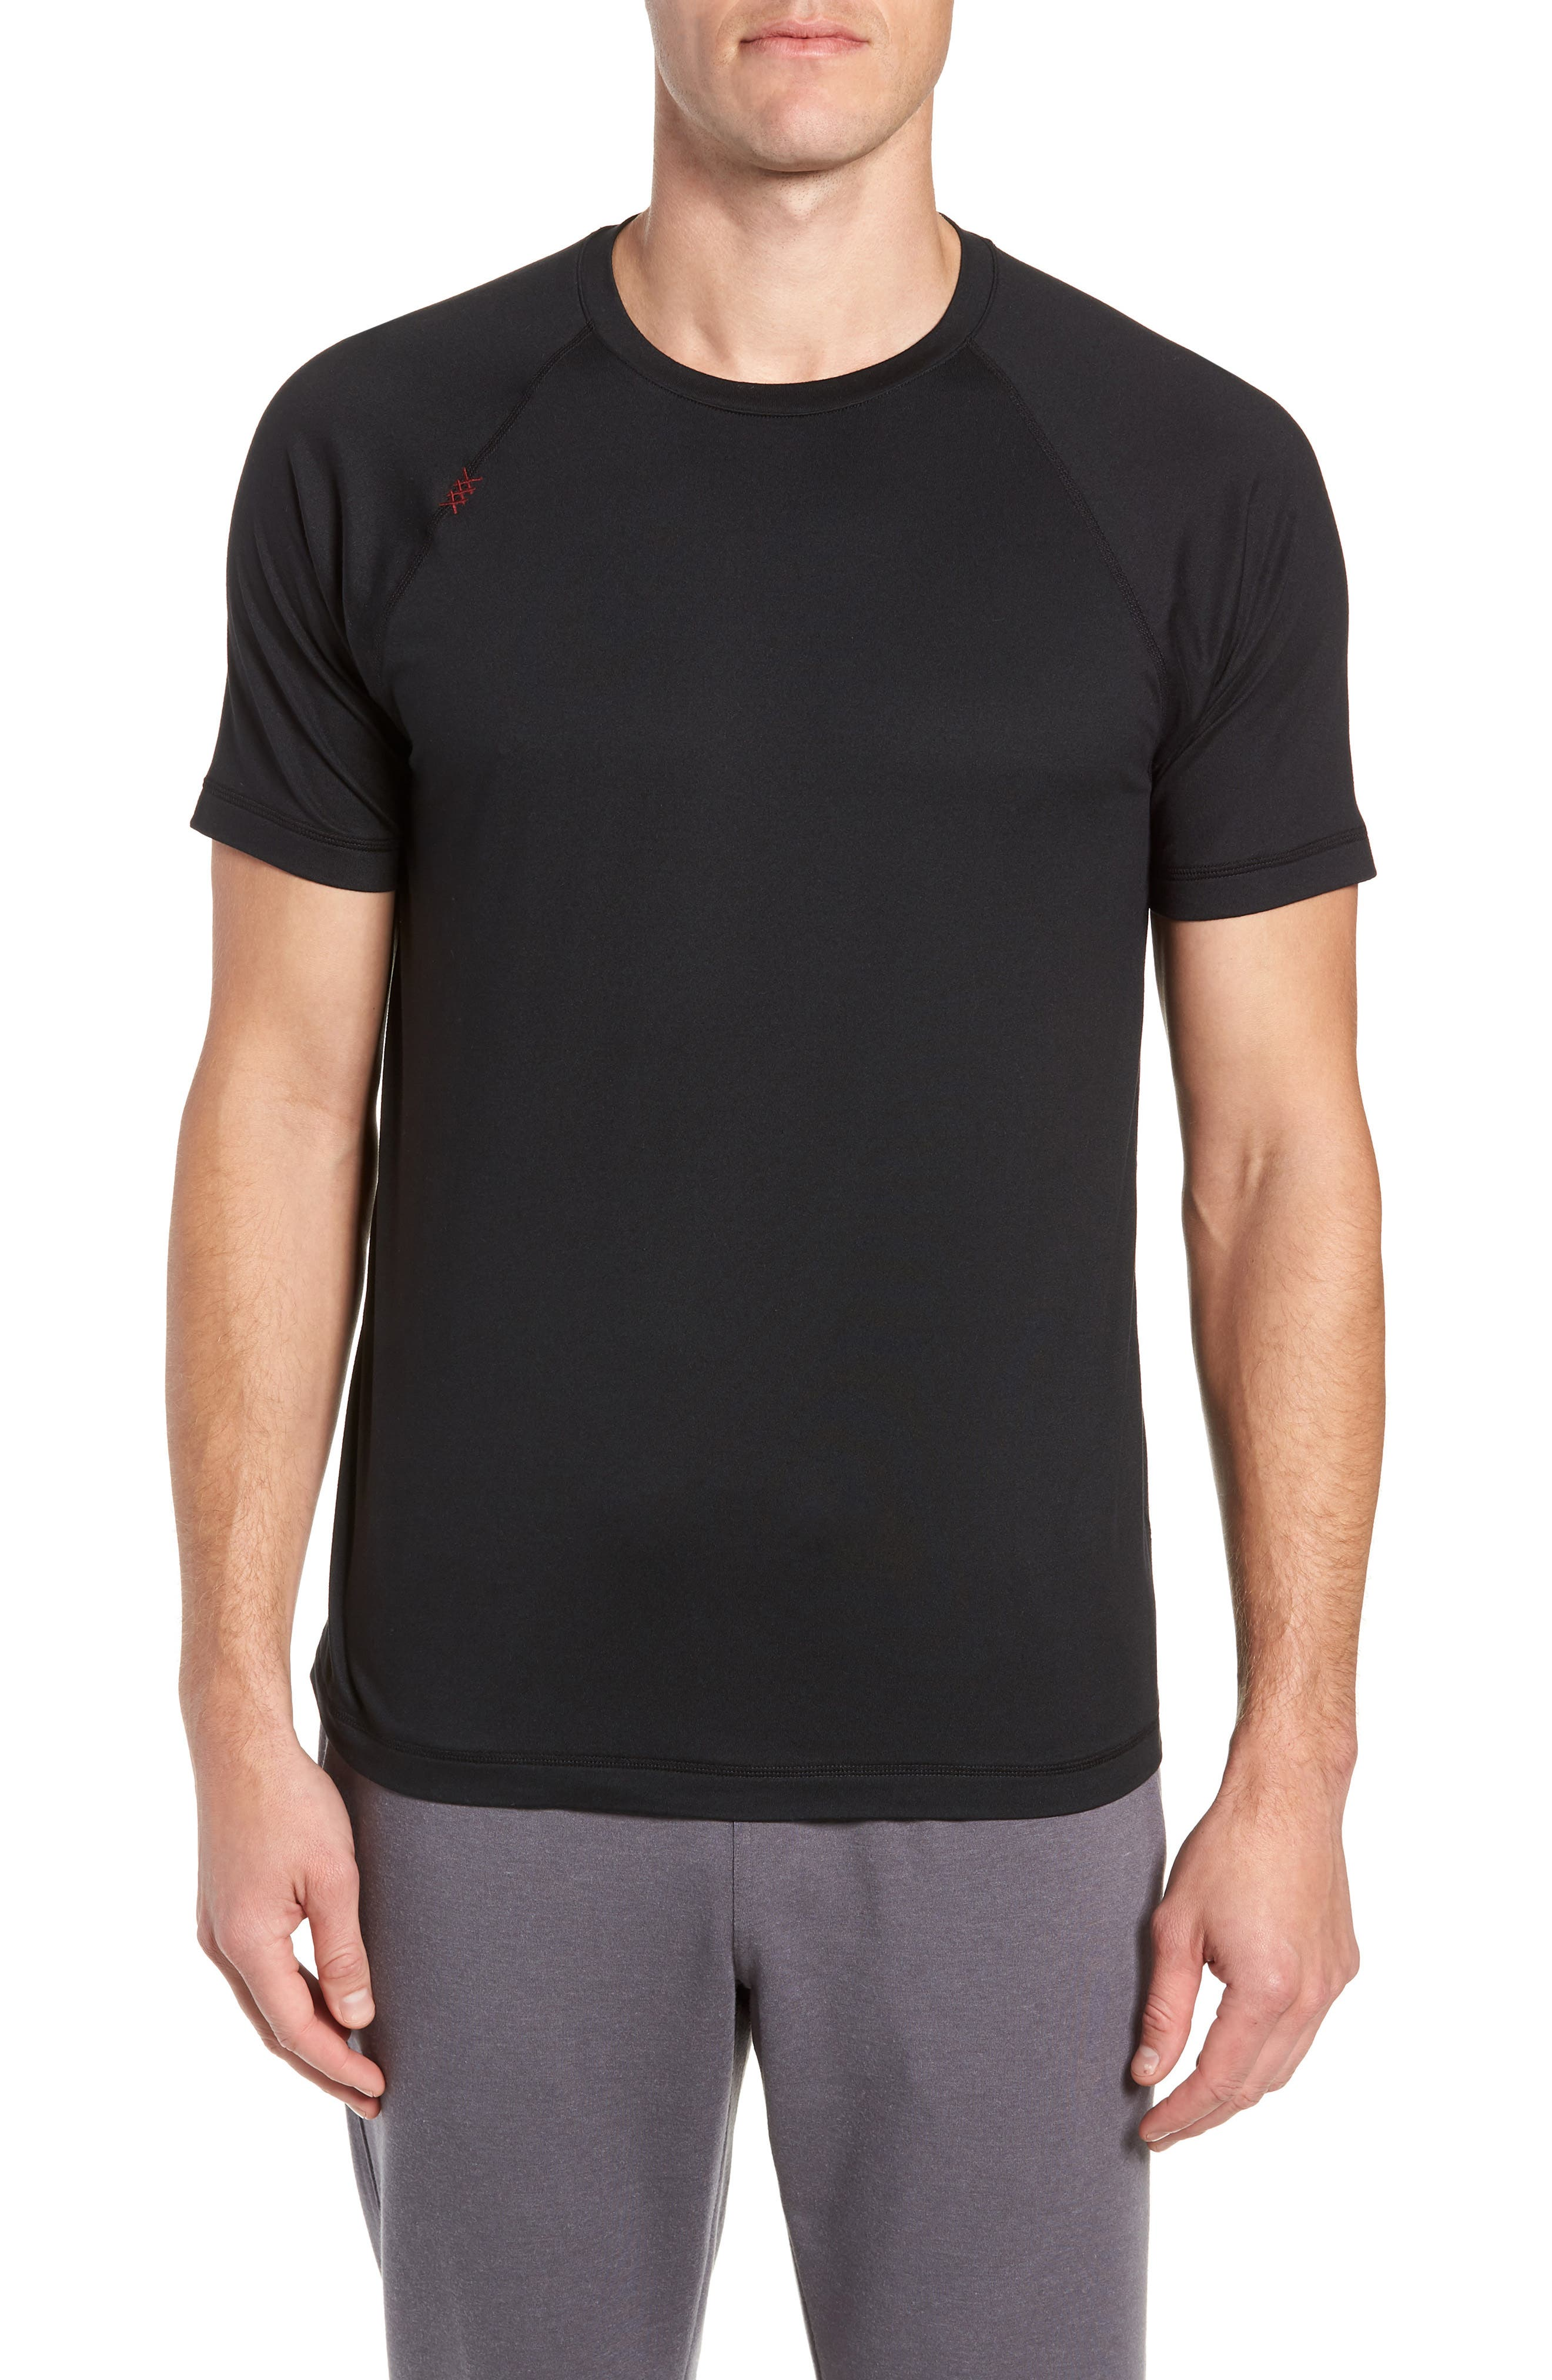 RHONE Reign Performance T-Shirt in Black